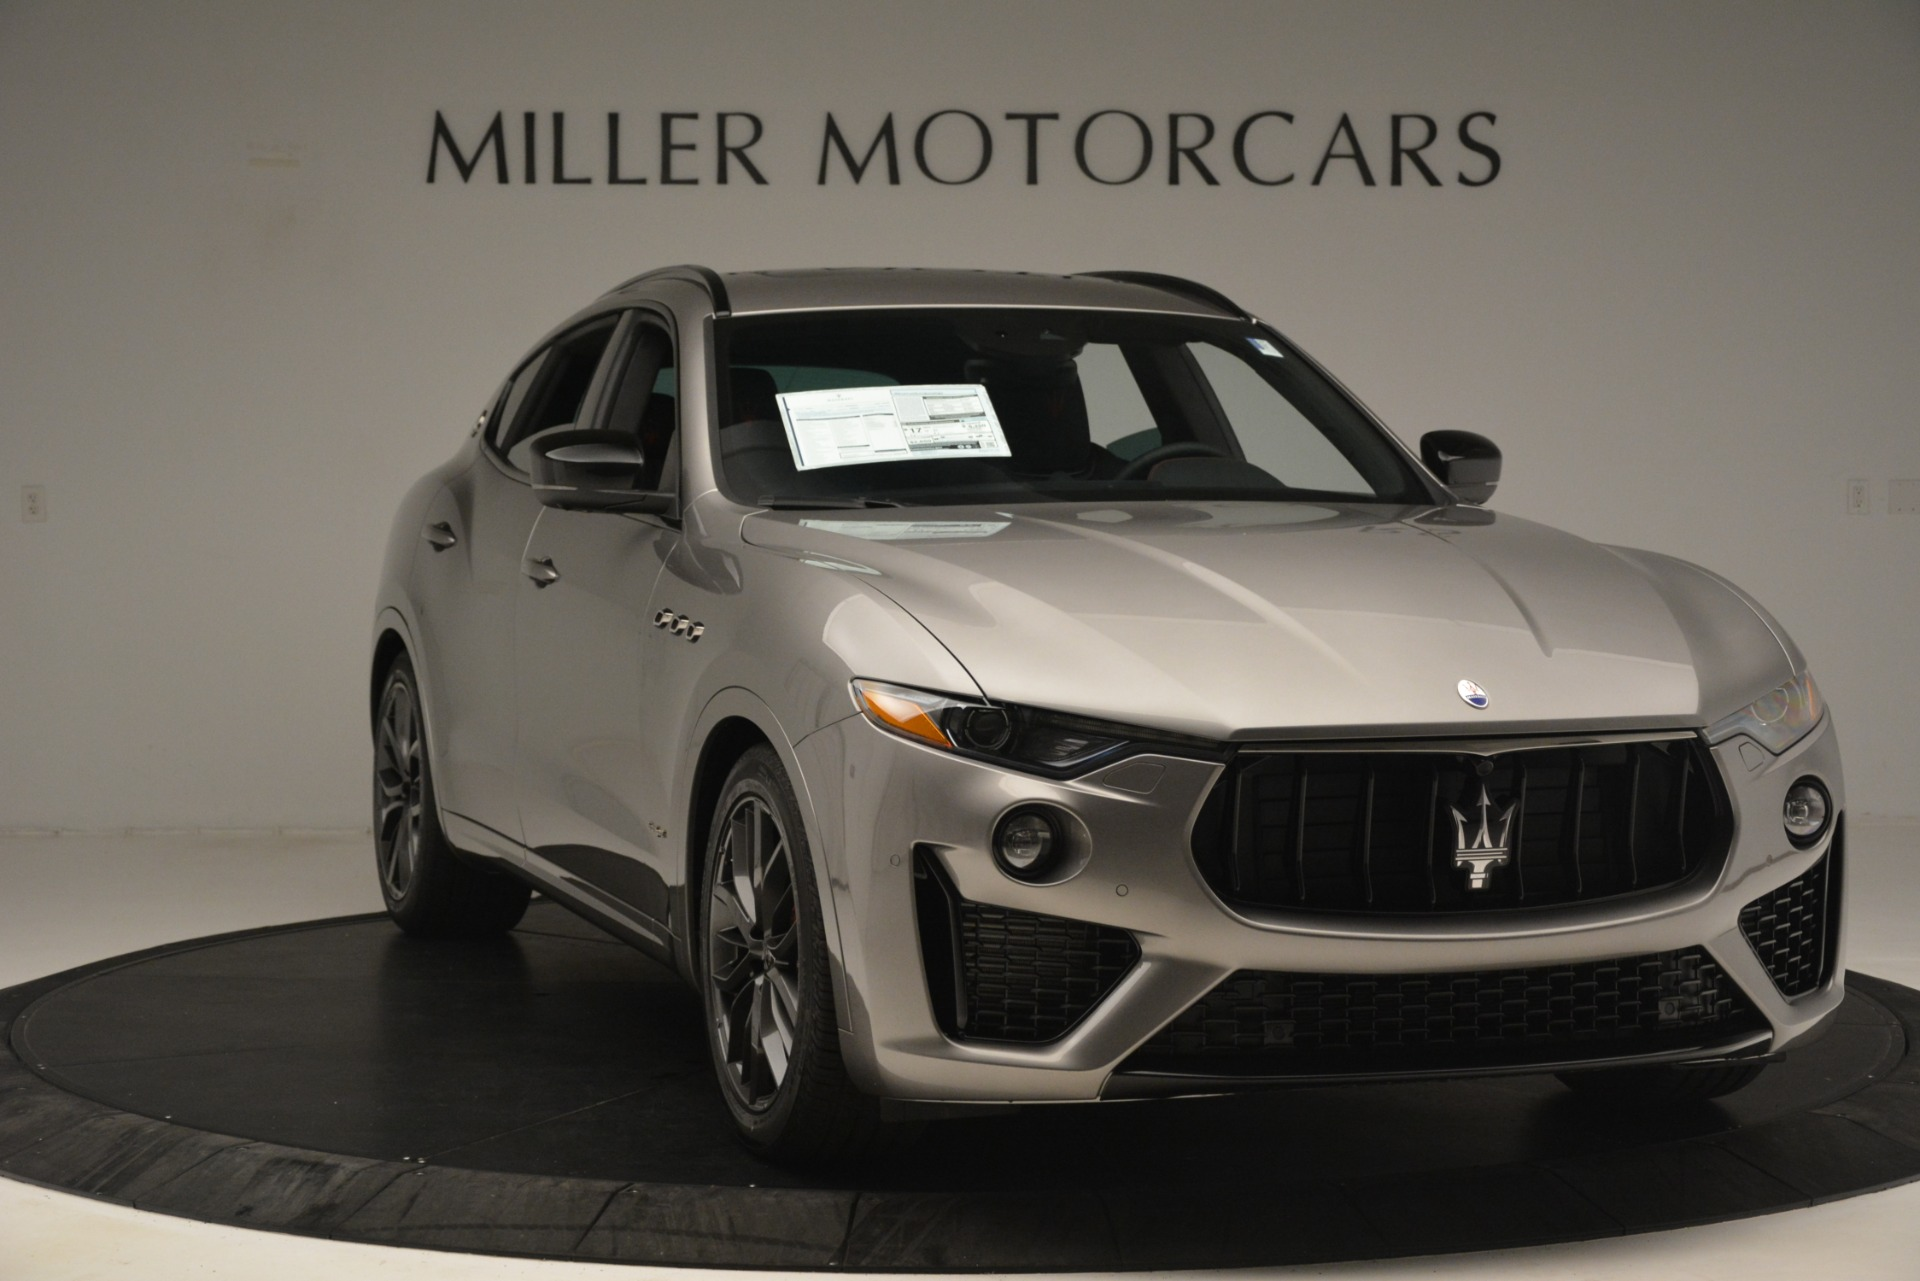 New 2019 Maserati Levante SQ4 GranSport Nerissimo For Sale In Westport, CT 3177_p11